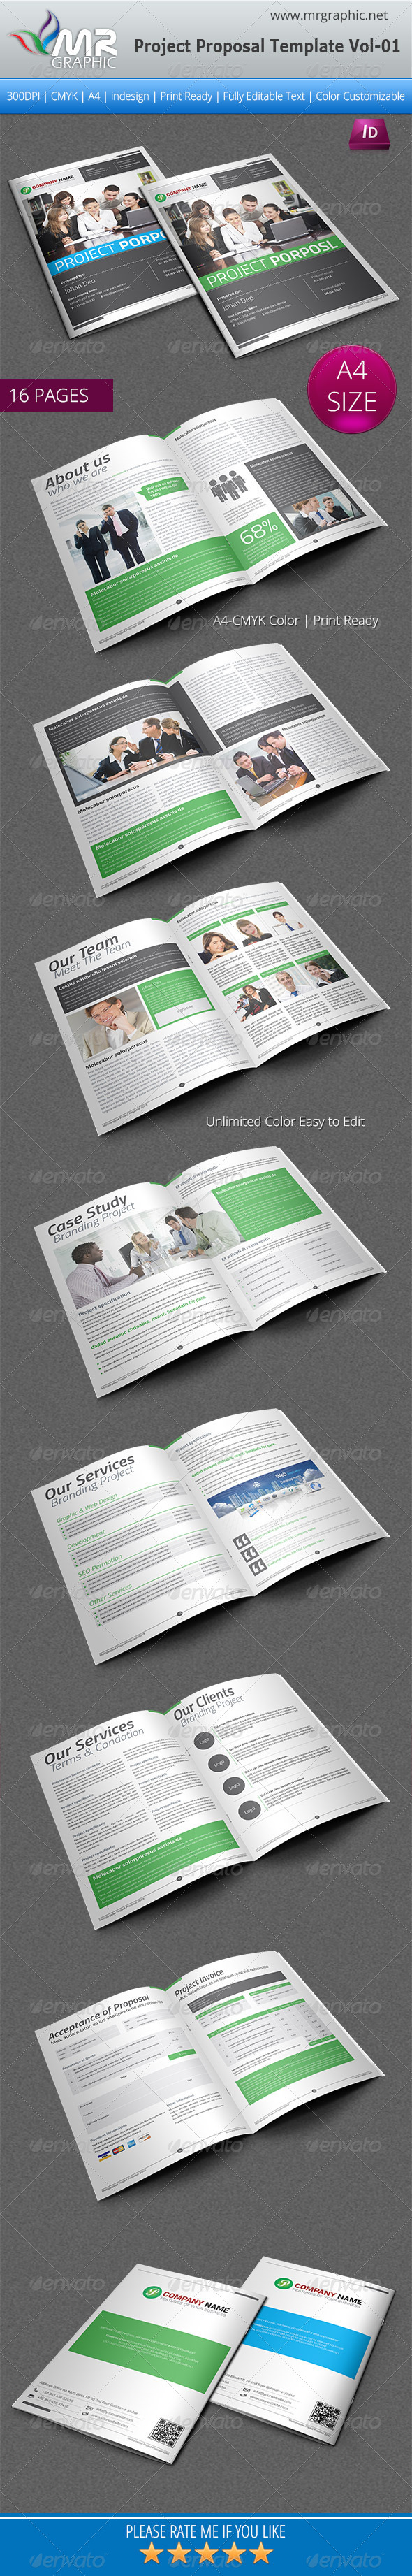 GraphicRiver Project Proposal Template Vol-01 6282683